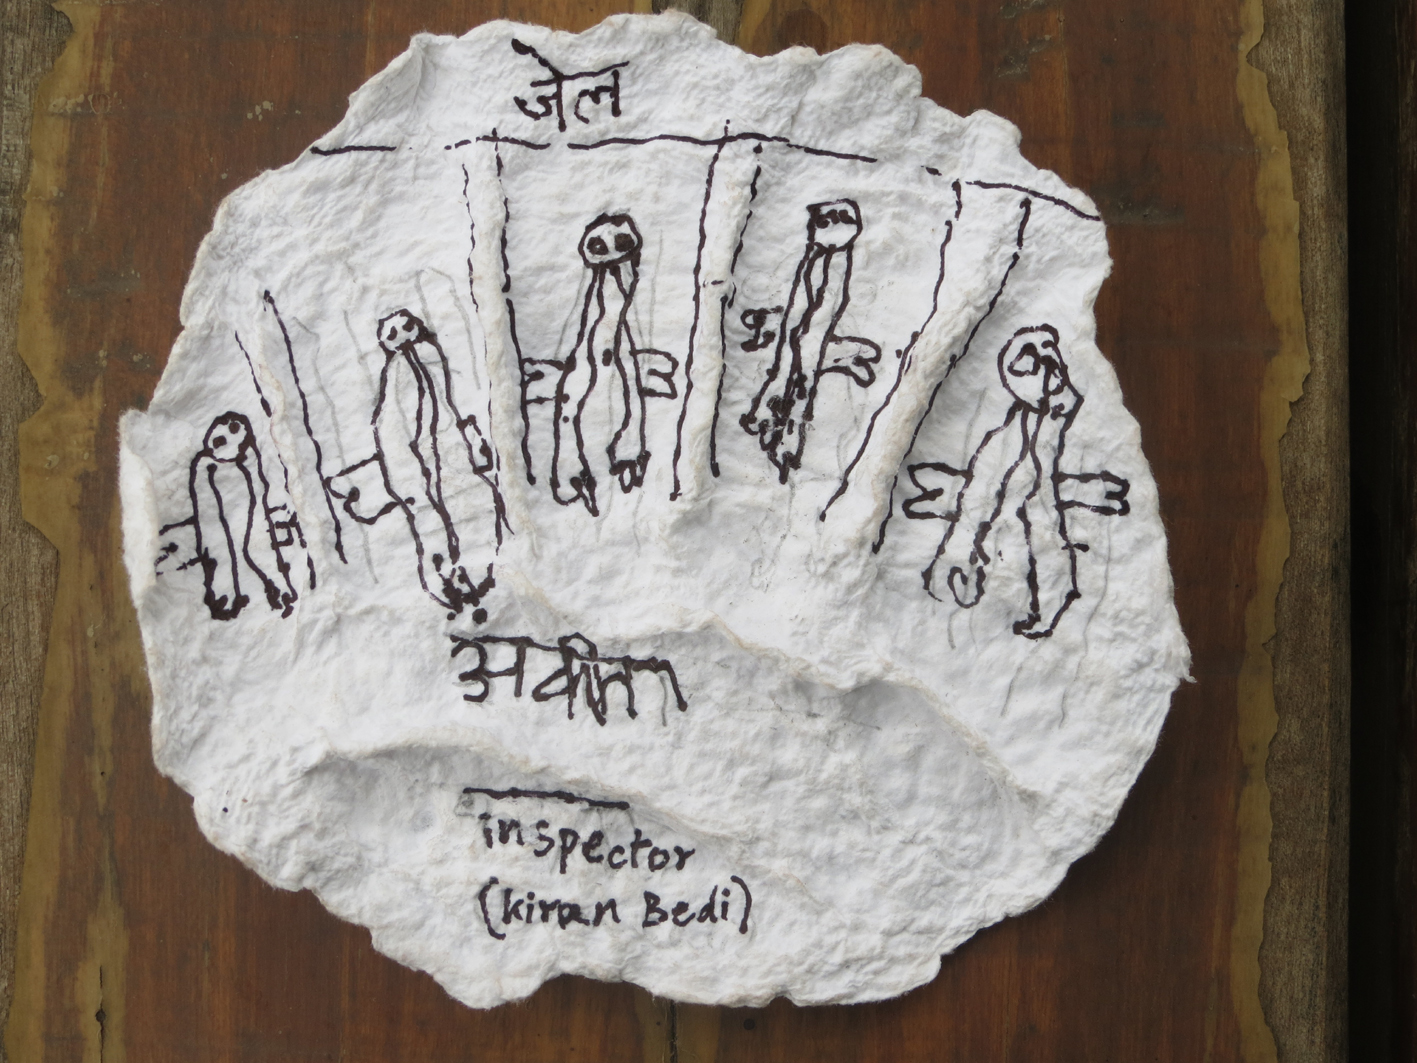 Art work by children in Maihar on paper kandas. Image courtesy: Nobina Gupta.